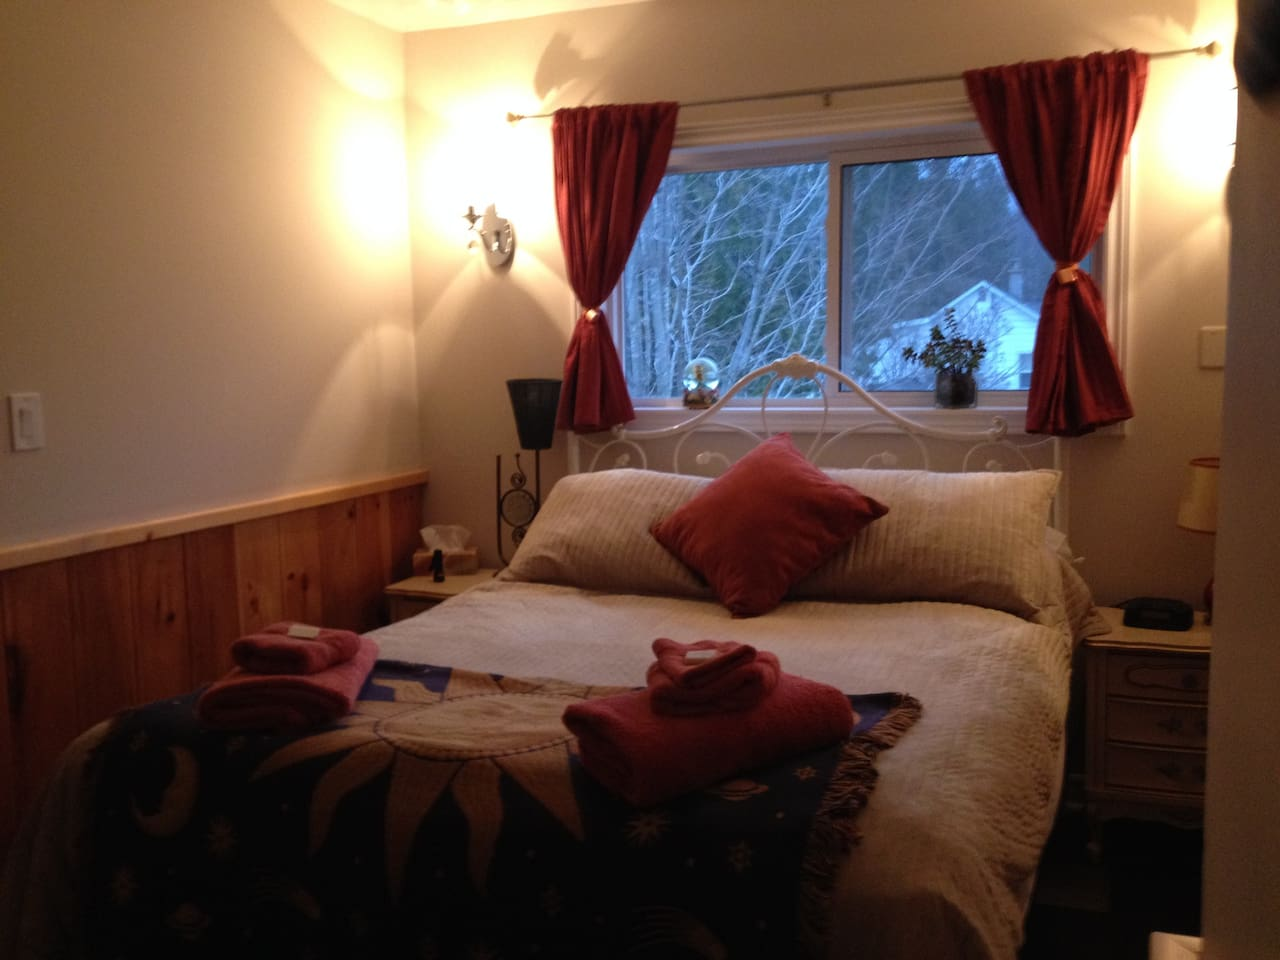 The Moon Room has a moodier vibe. It features a queen sized bed as well.